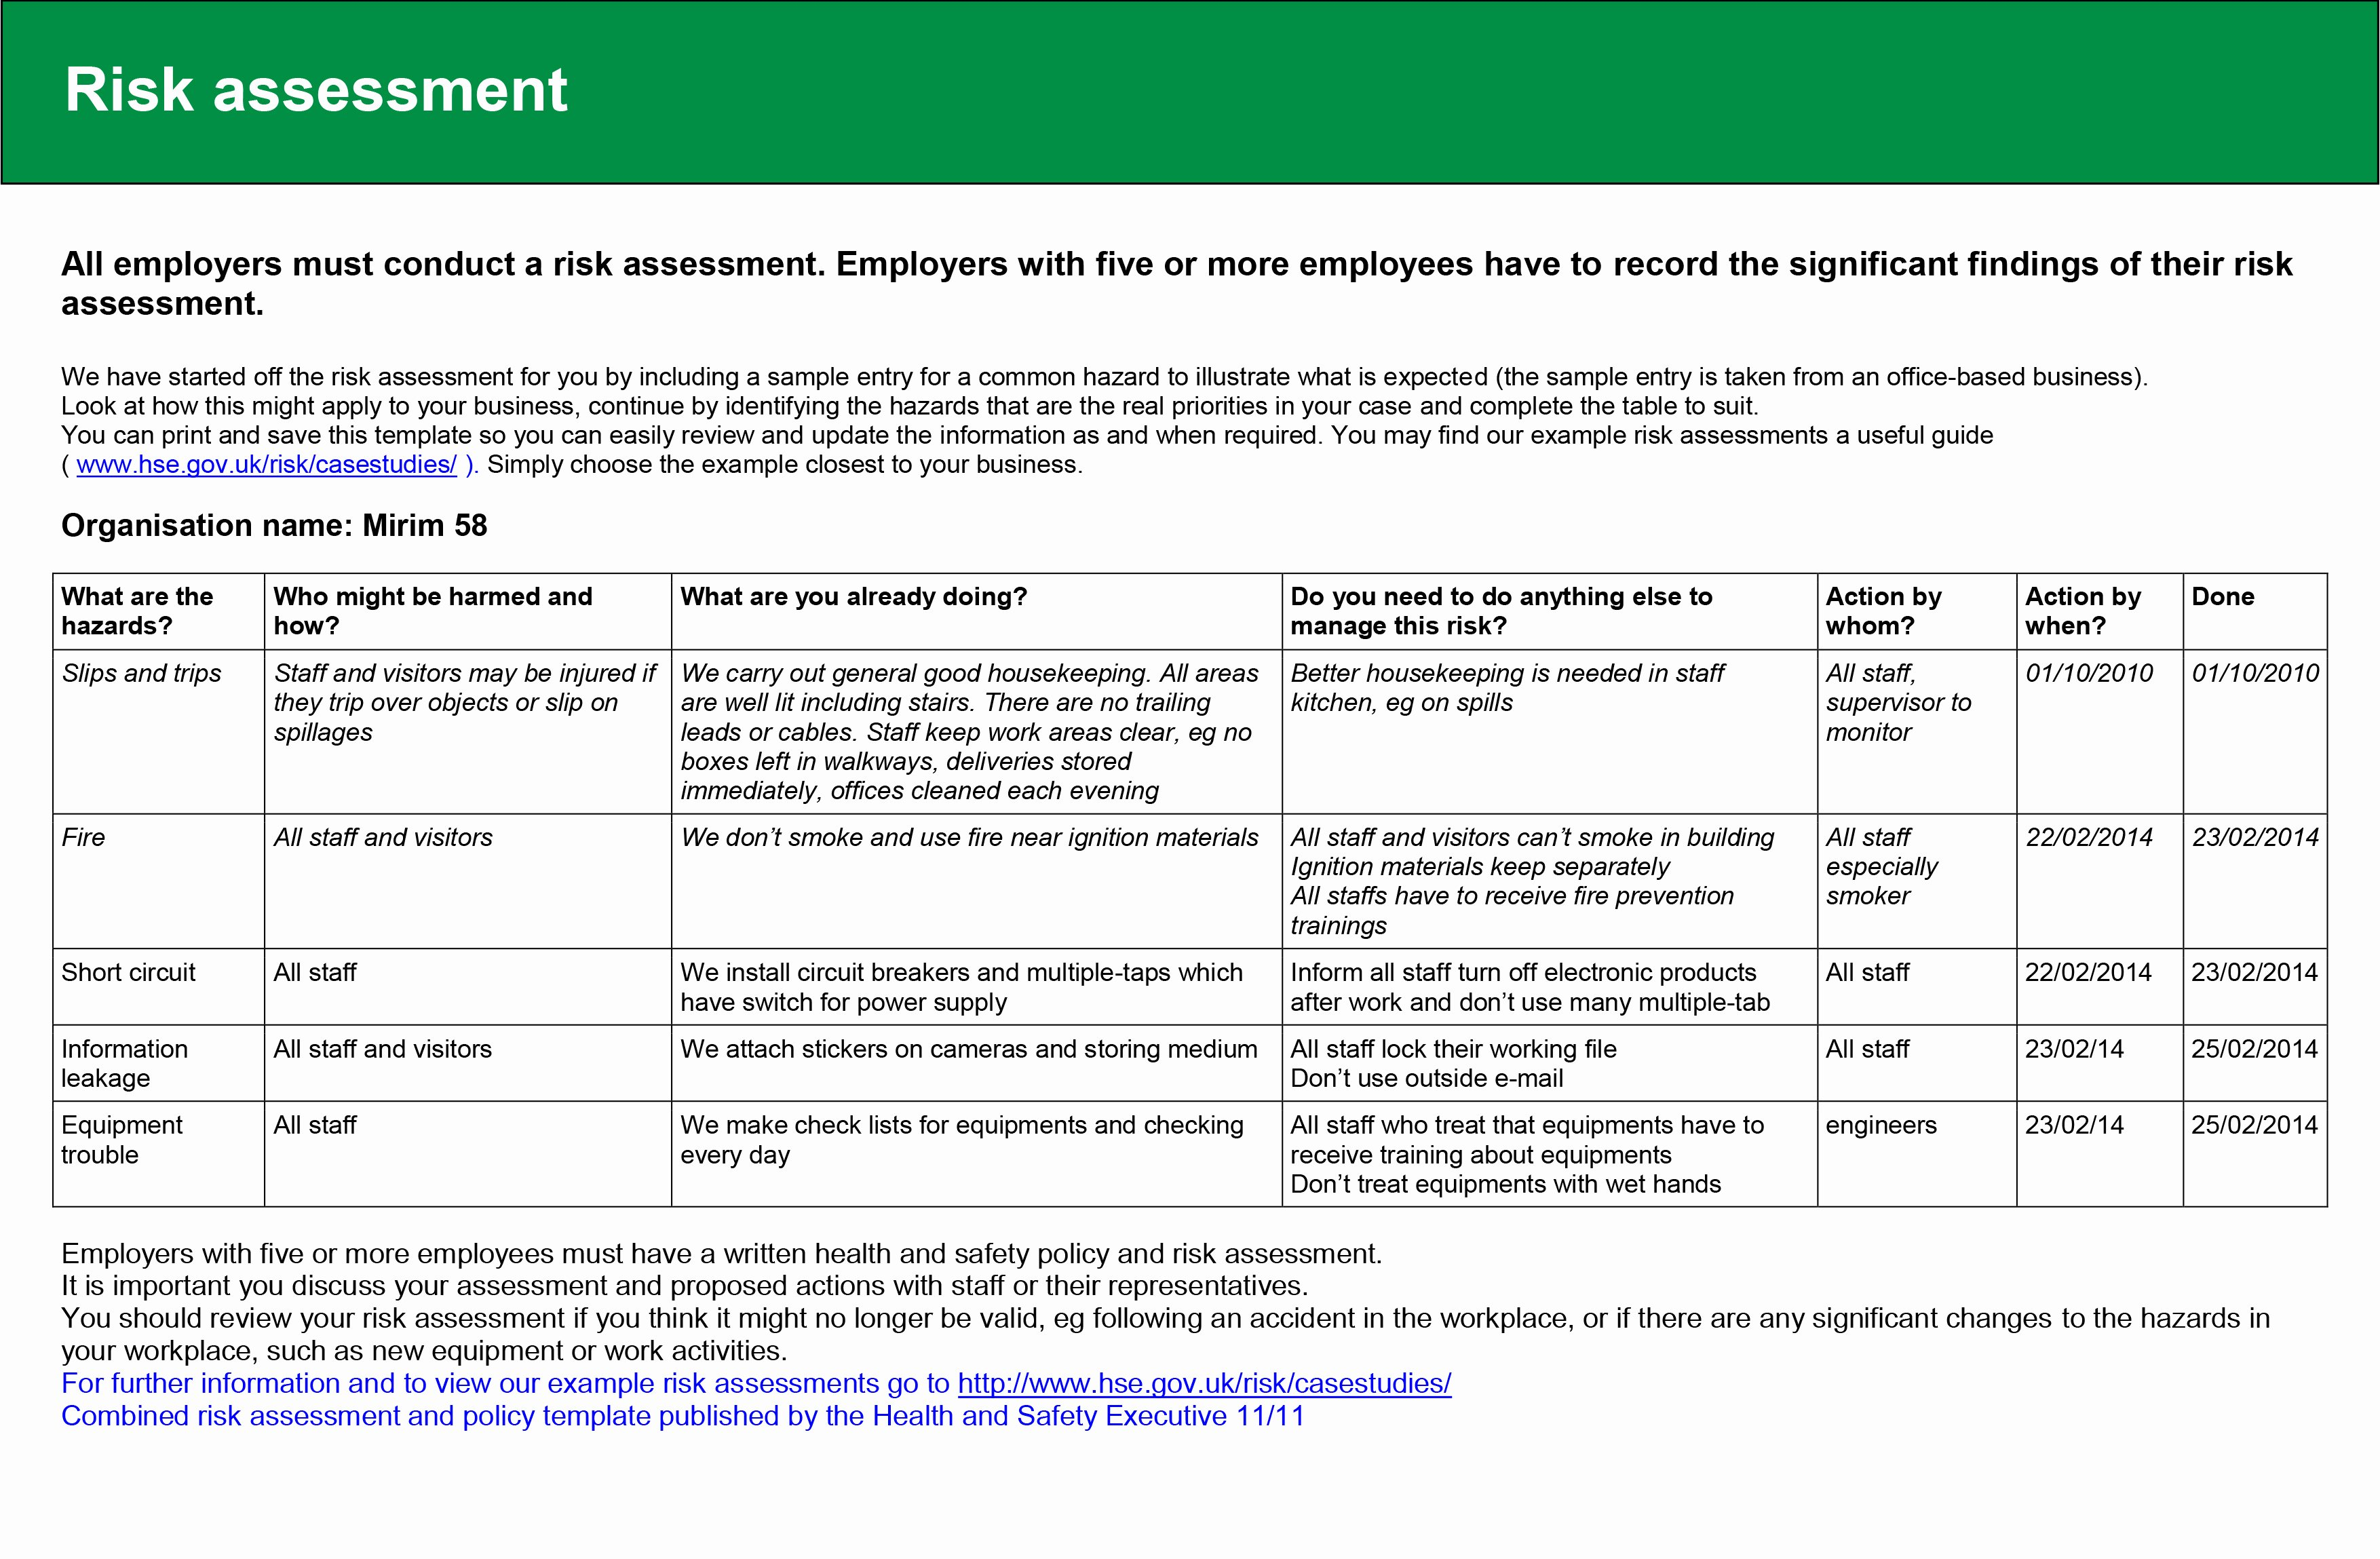 Risk assessment Report Template Awesome Task2 – 2014mirimstudent58